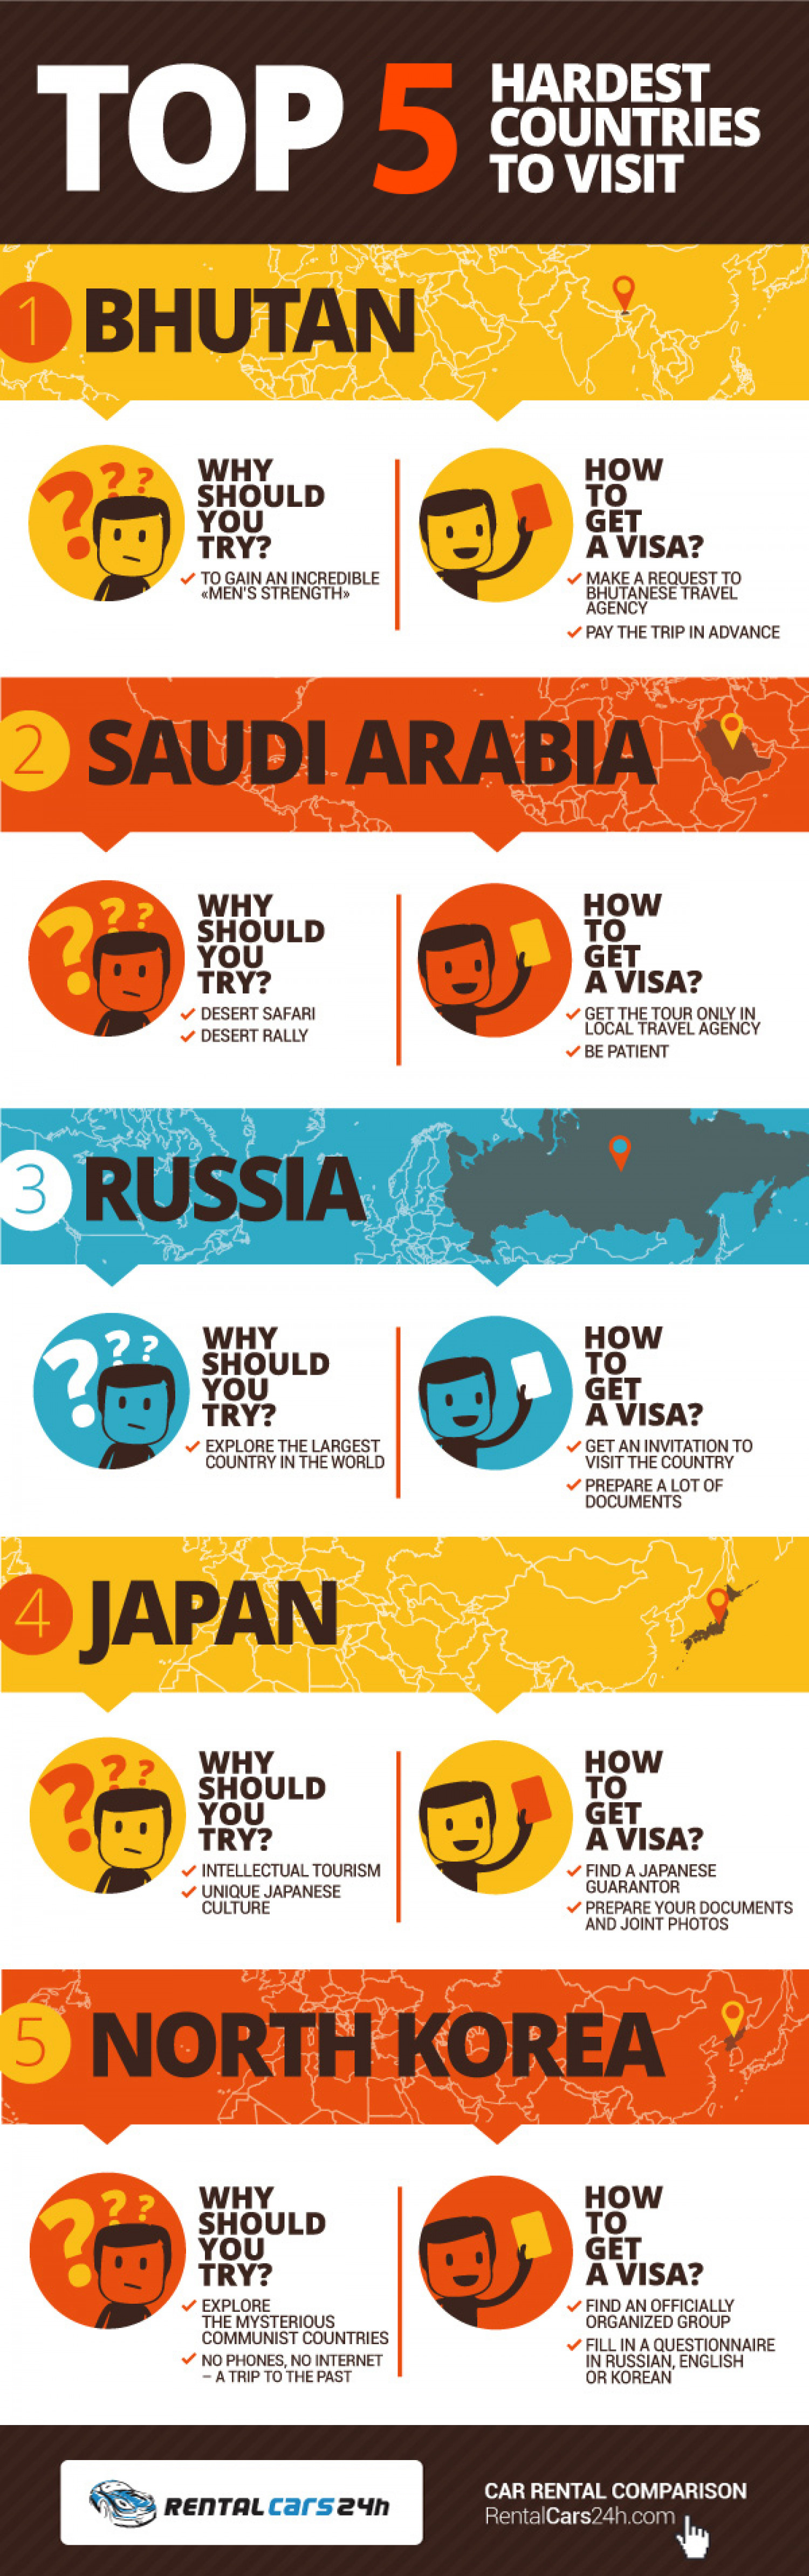 TOP 5 Hardest Countries To Visit Infographic